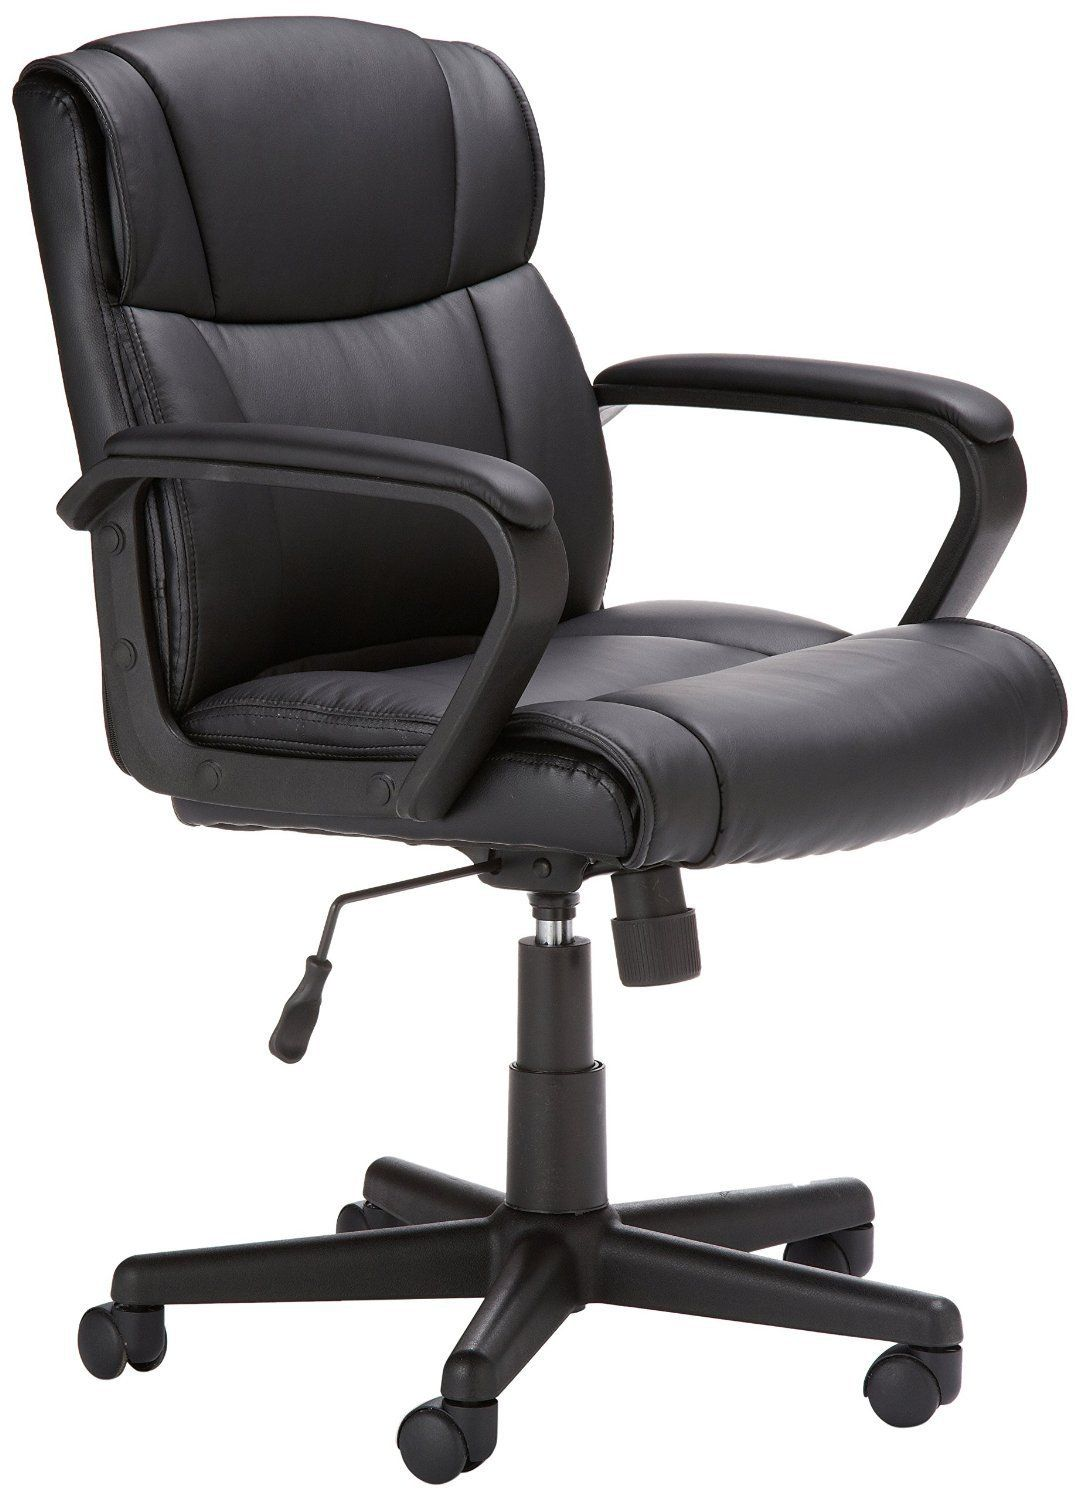 Desk stools are perfect for comfortable work best computer chairs - The Comfortable Seat Will Bring Your Work To Be Done Perfectly Moreover Choosing The Best Ergonomic Office Chairamazon